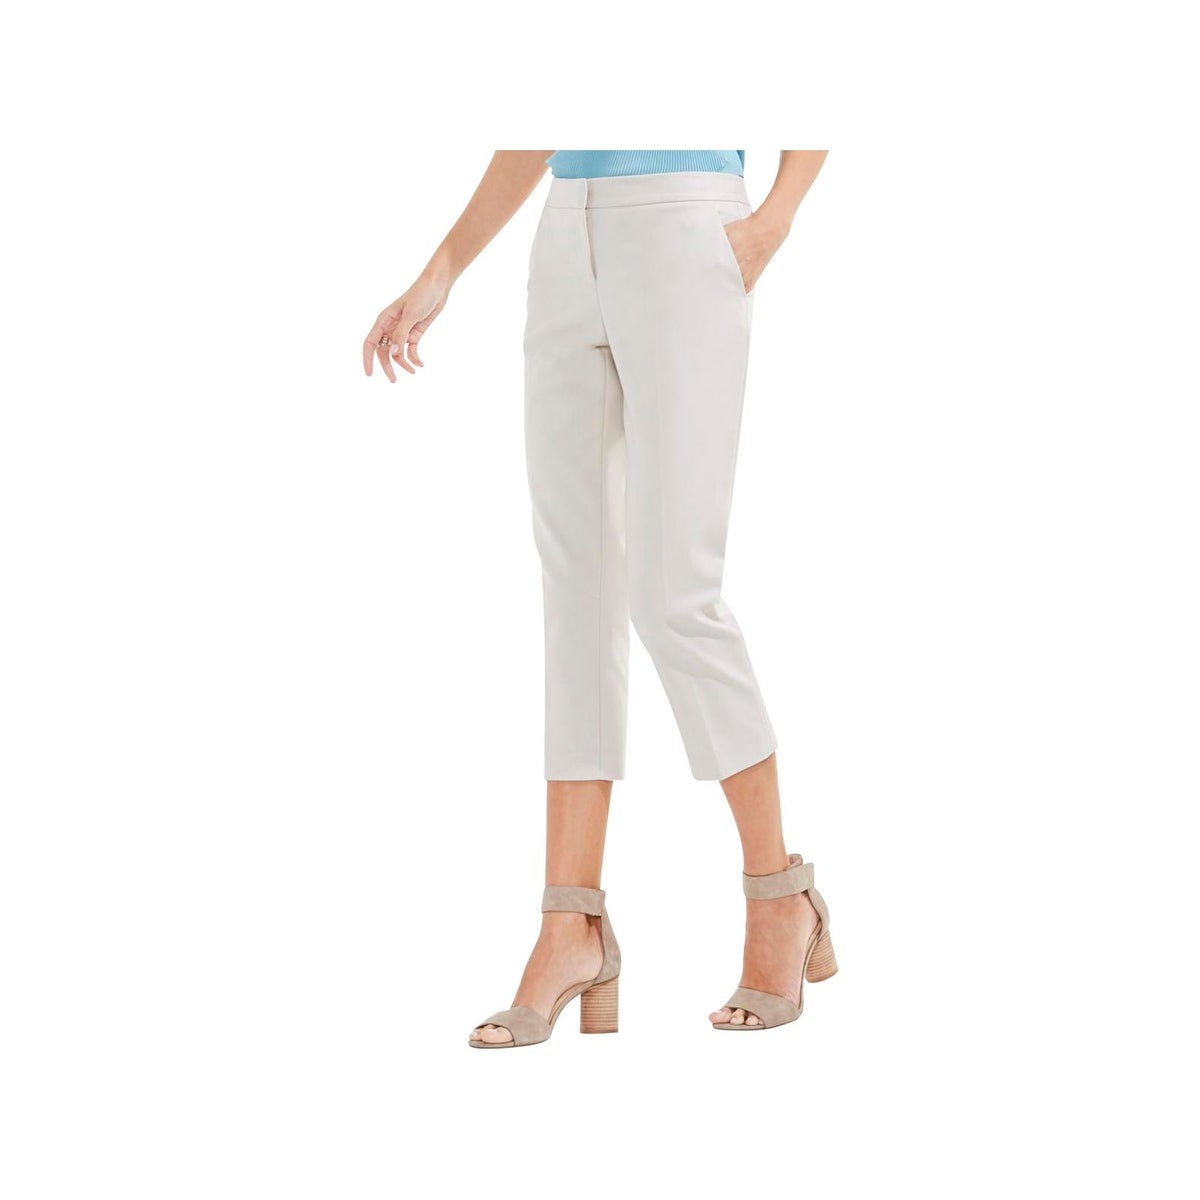 46f8cf2ca48895 Shop Vince Camuto Womens Capri Pants Flat Front Cropped - 10 - Free  Shipping On Orders Over  45 - Overstock - 22513483